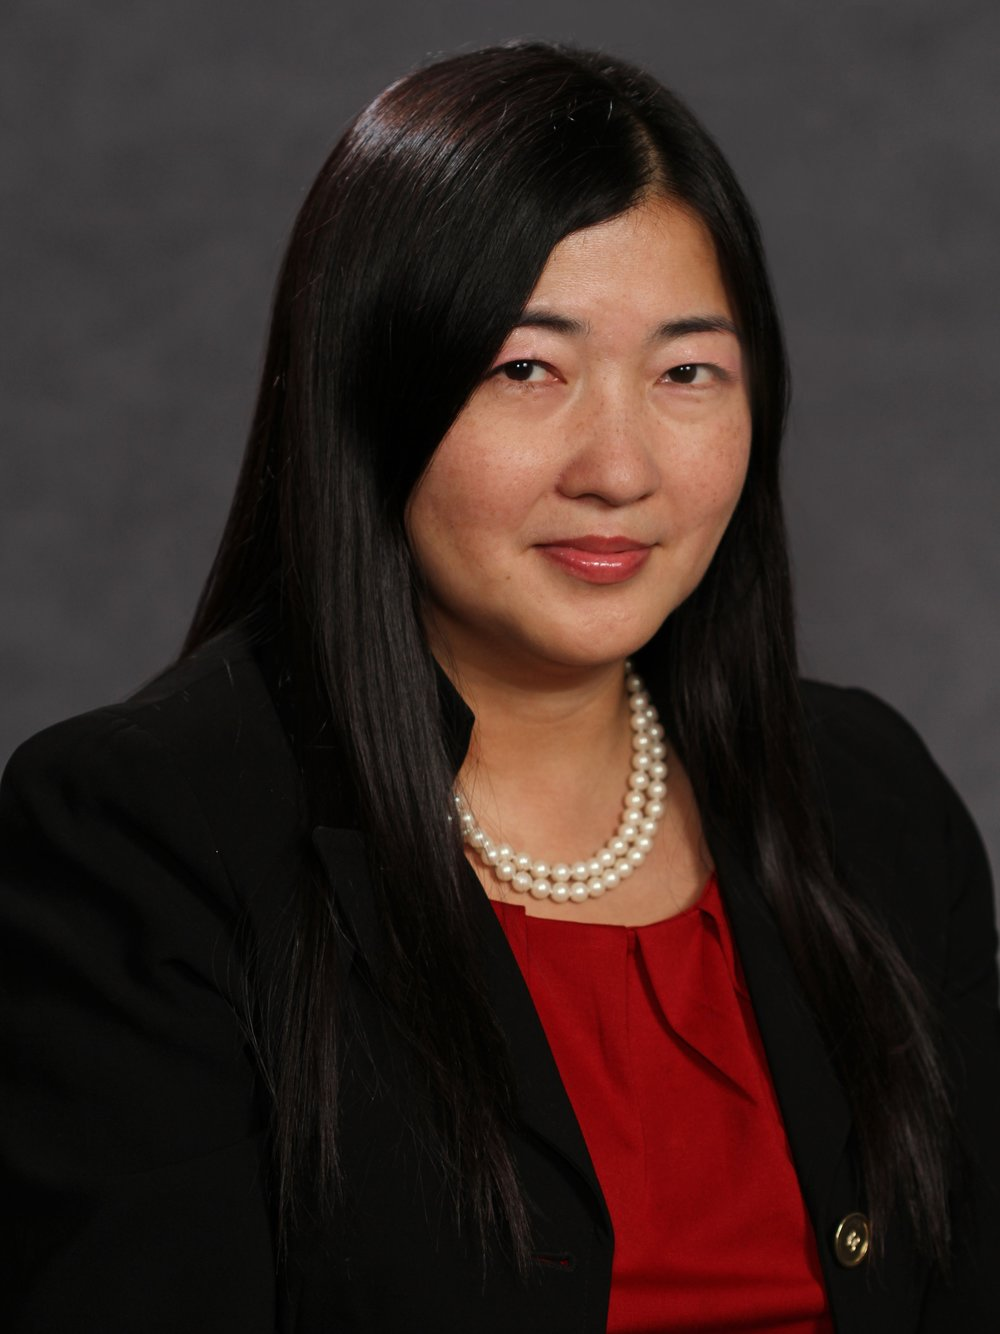 Joanne C. Chiu - Joanne C. Chiu, CPA, is a Director of China Desk at Marks Paneth LLP. She has more than 20 years of accounting experience including more than 15 years in public accounting. She has provides a broad range of tax planning and consulting services for closely held businesses and individuals, including international clients. Her areas of specialty include real estate (both commercial and residential), estates and trusts, and high-net-worth individuals. She has served a broad range of international clients who invest in the real estate markets. Ms. Chiu is a founding member of the Marks Paneth China Desk, a cross-disciplinary team of professionals who assist Chinese businesses and individuals looking to work, invest, raise capital or do business in the United States. She is a native speaker of both Mandarin Chinese and Taiwanese. As a result of her success working with Asian clients, in July 2015, Ms. Chiu transitioned into a full-time business development role. Focusing on the China Desk, she works primarily with international clients to understand their accounting needs, liaising to match client requirements with Marks Paneth resources and expertise. Much of her practice involves EB-5, real estate, estates and trusts, e-Commerce, international tax, private equity and merger and acquisitions. She also provides critical networking services, linking clients to other professional service providers including bankers, lawyers and real estate professionals. Besides networking services, Joanne helps her clients grow their businesses.